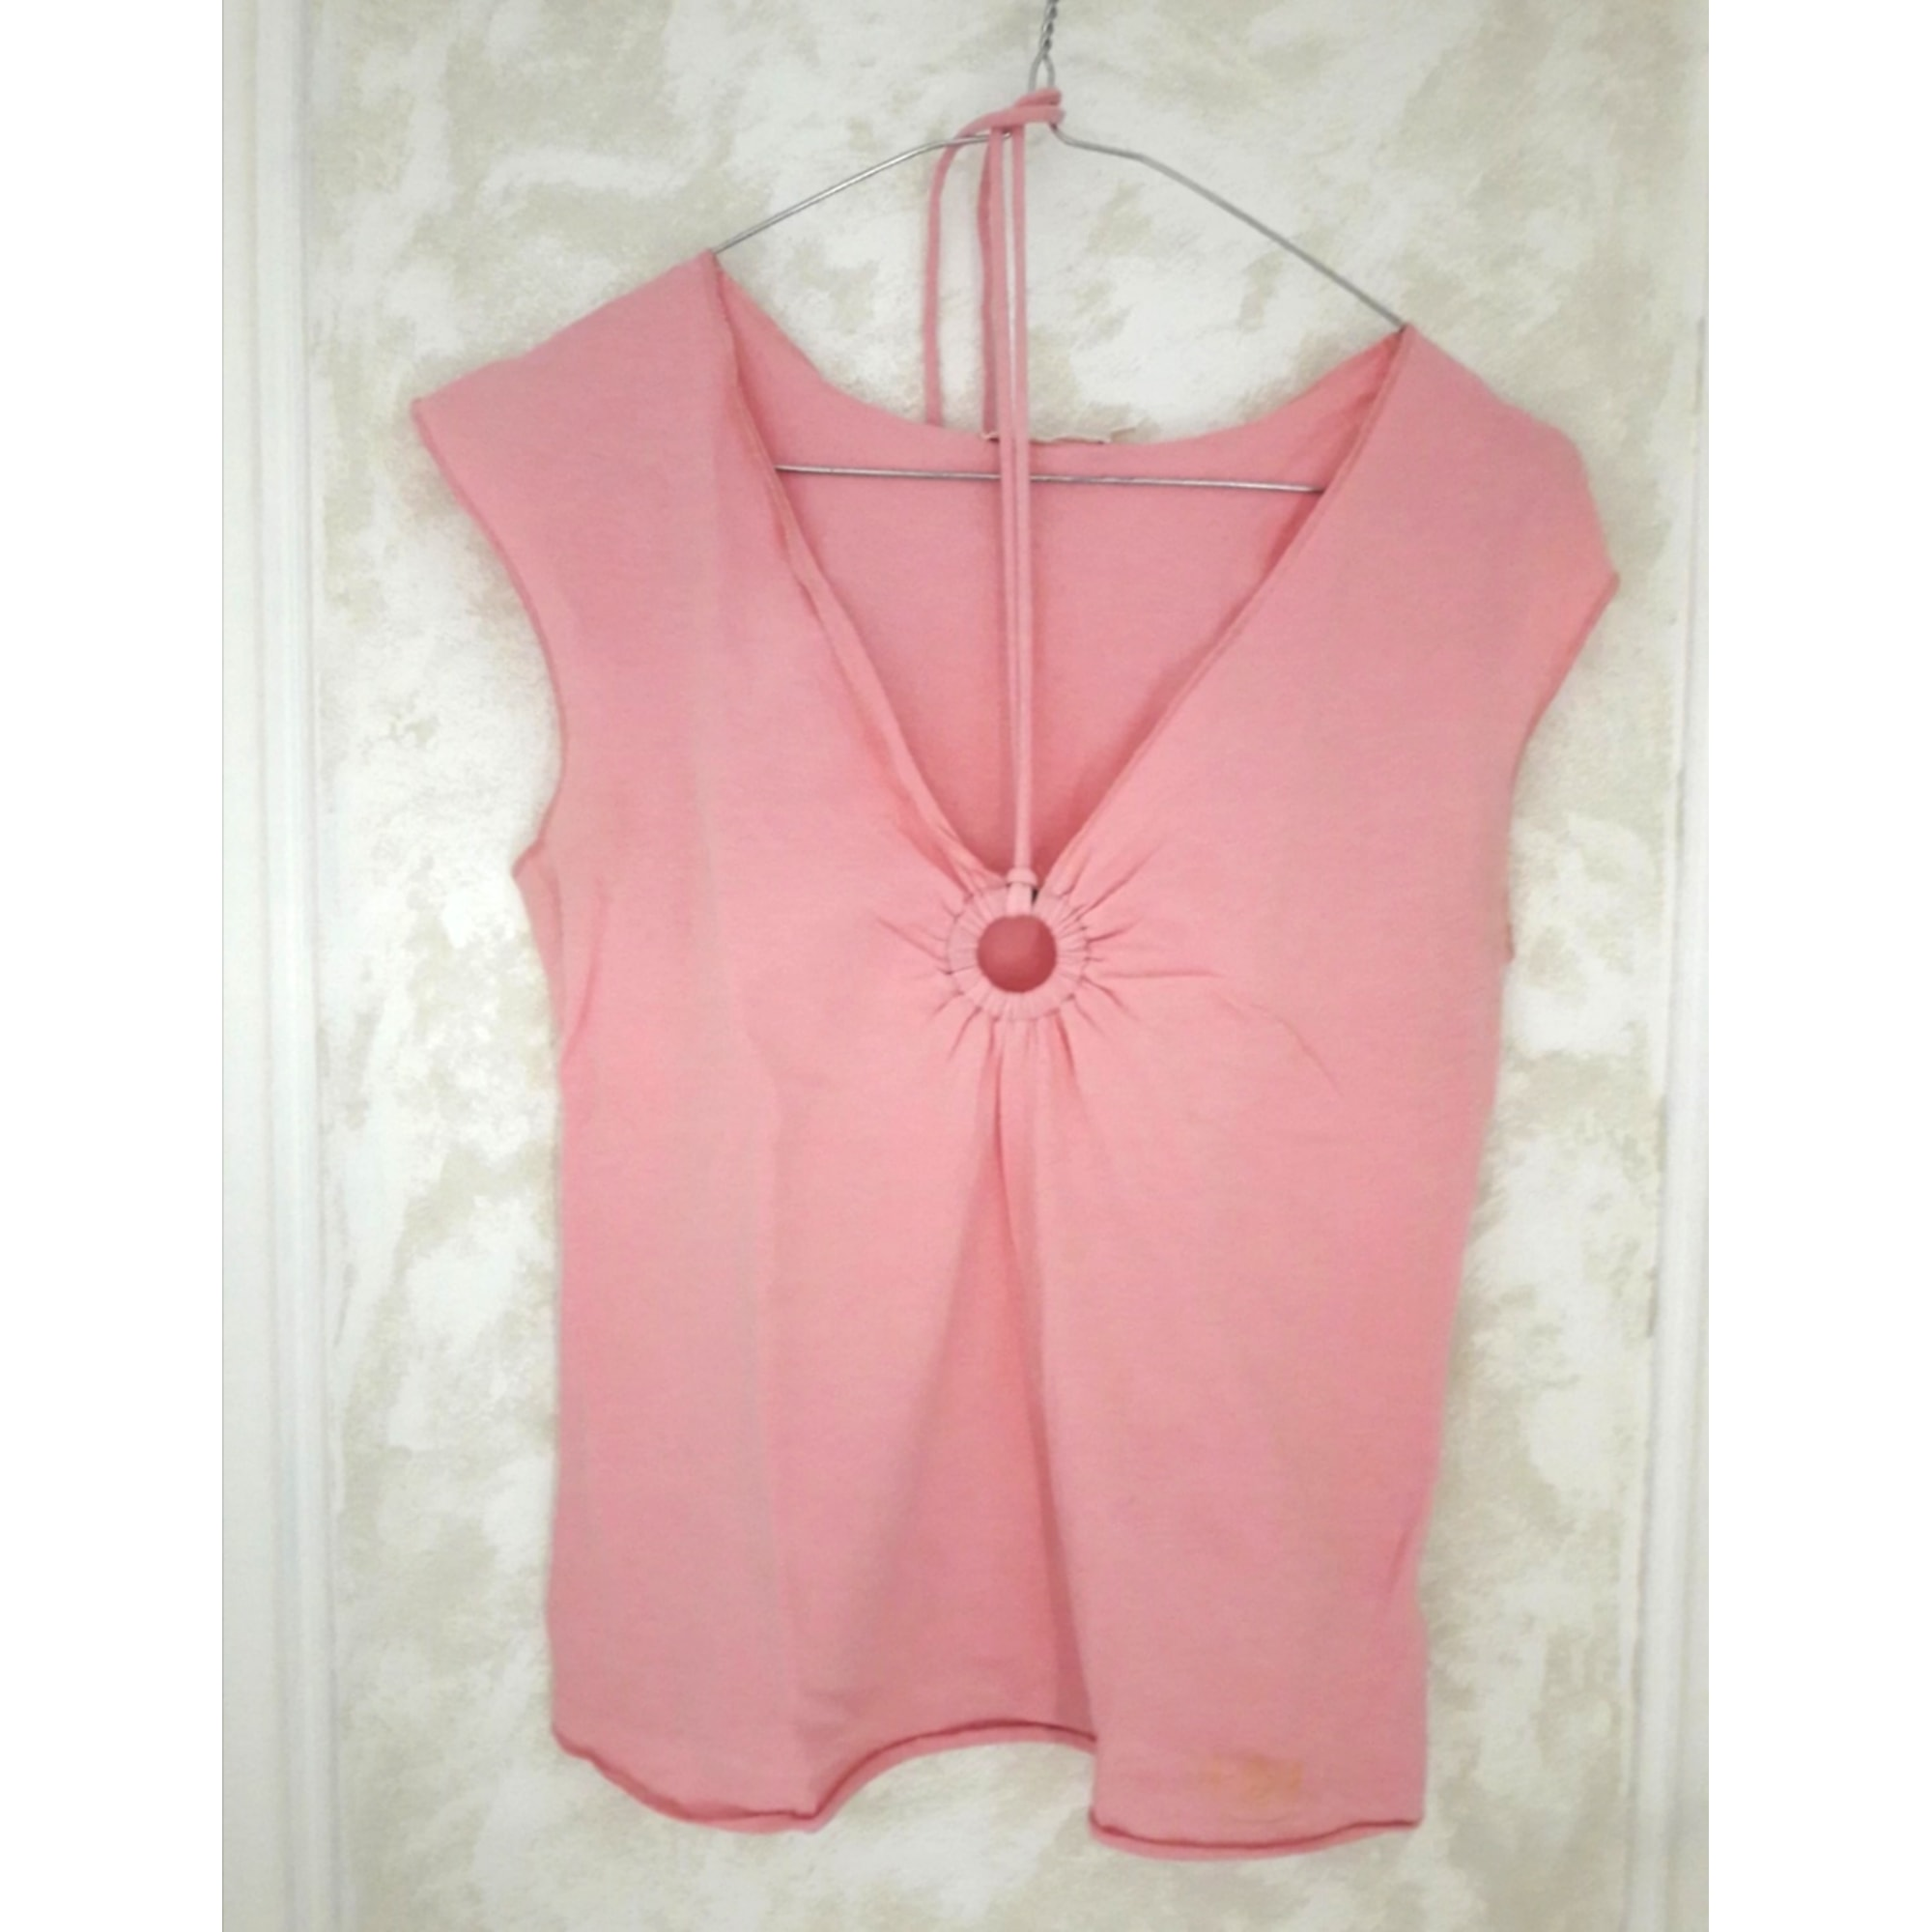 Top, tee-shirt ROXY Rose, fuschia, vieux rose